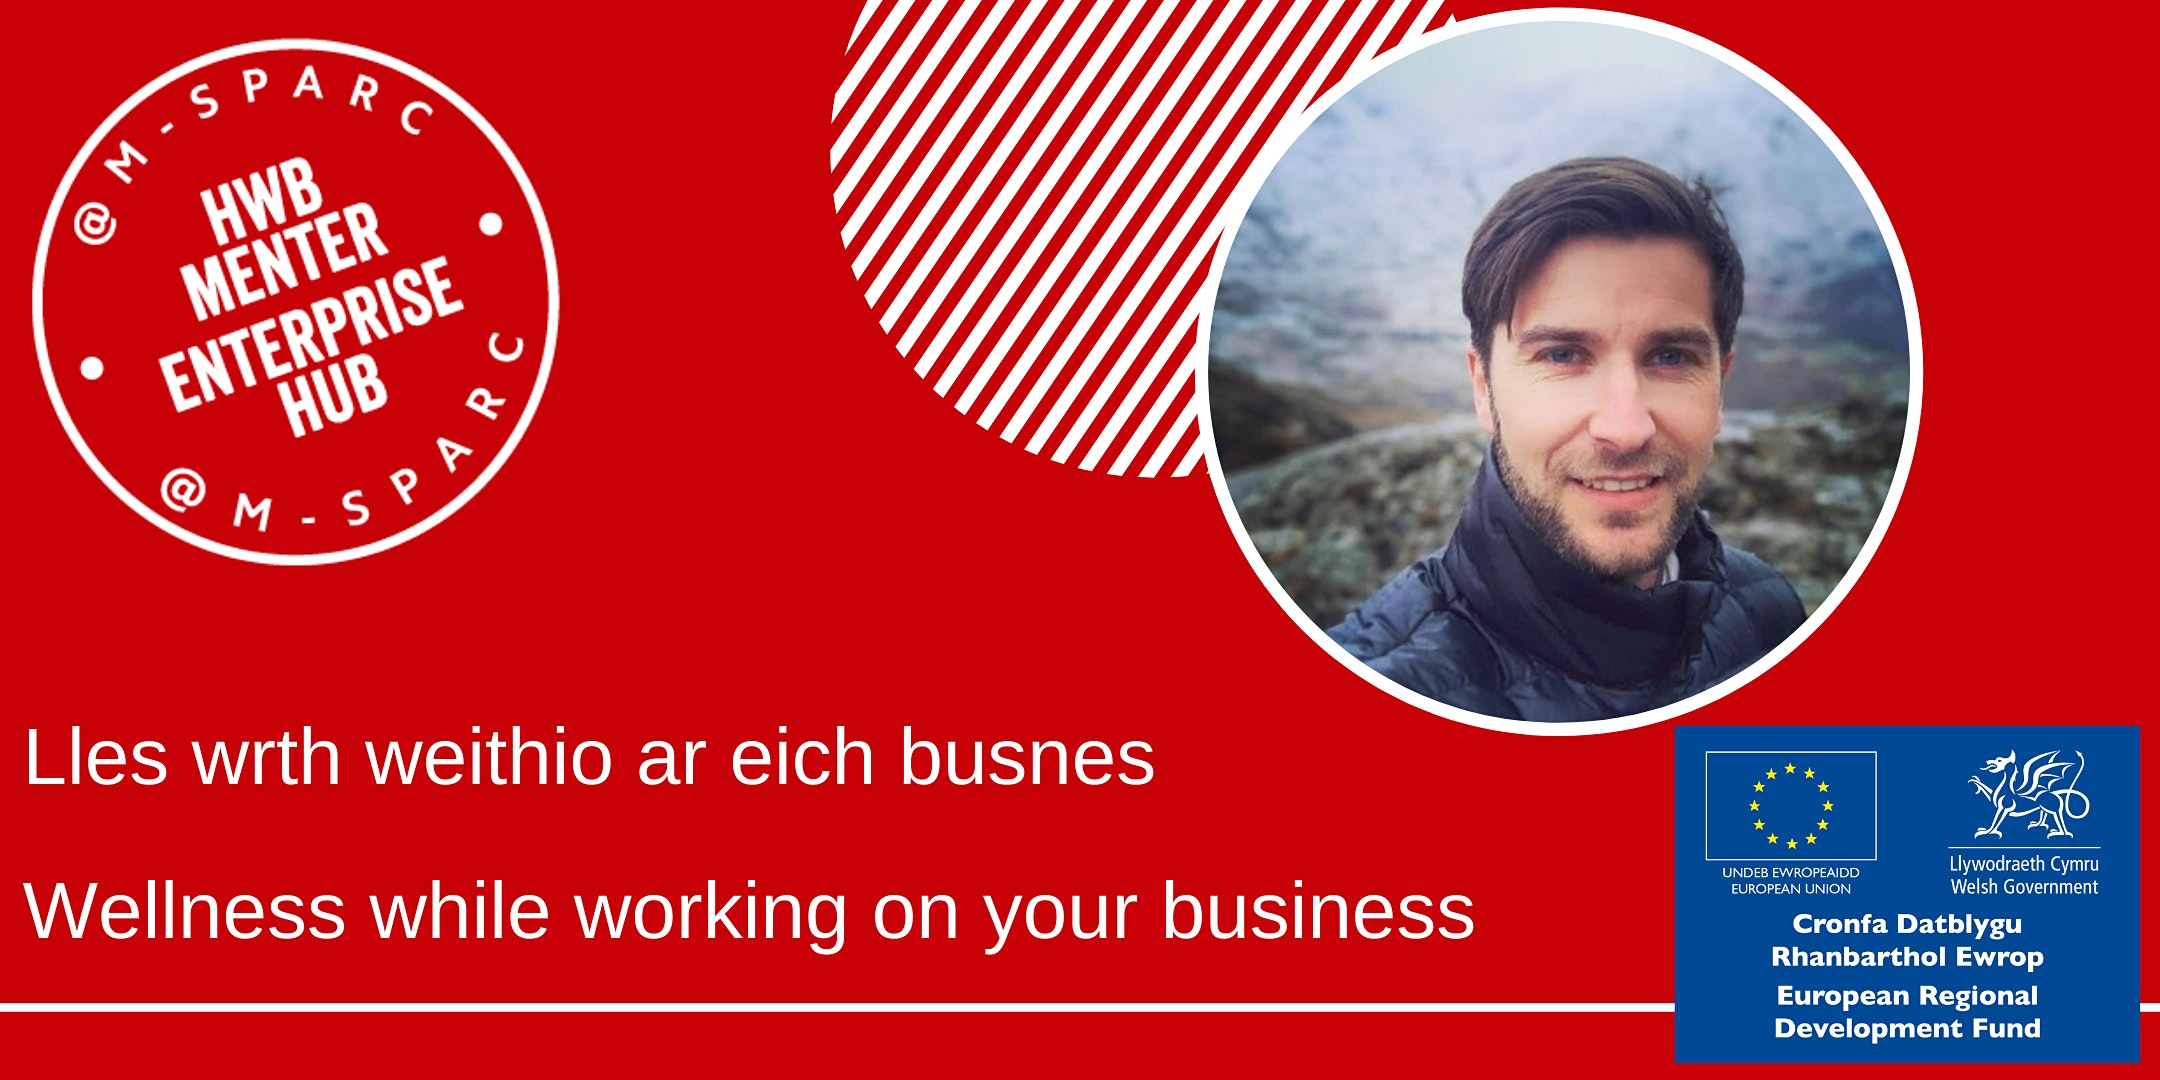 Lles wrth weithio ar eich busnes / Wellness while working on your business